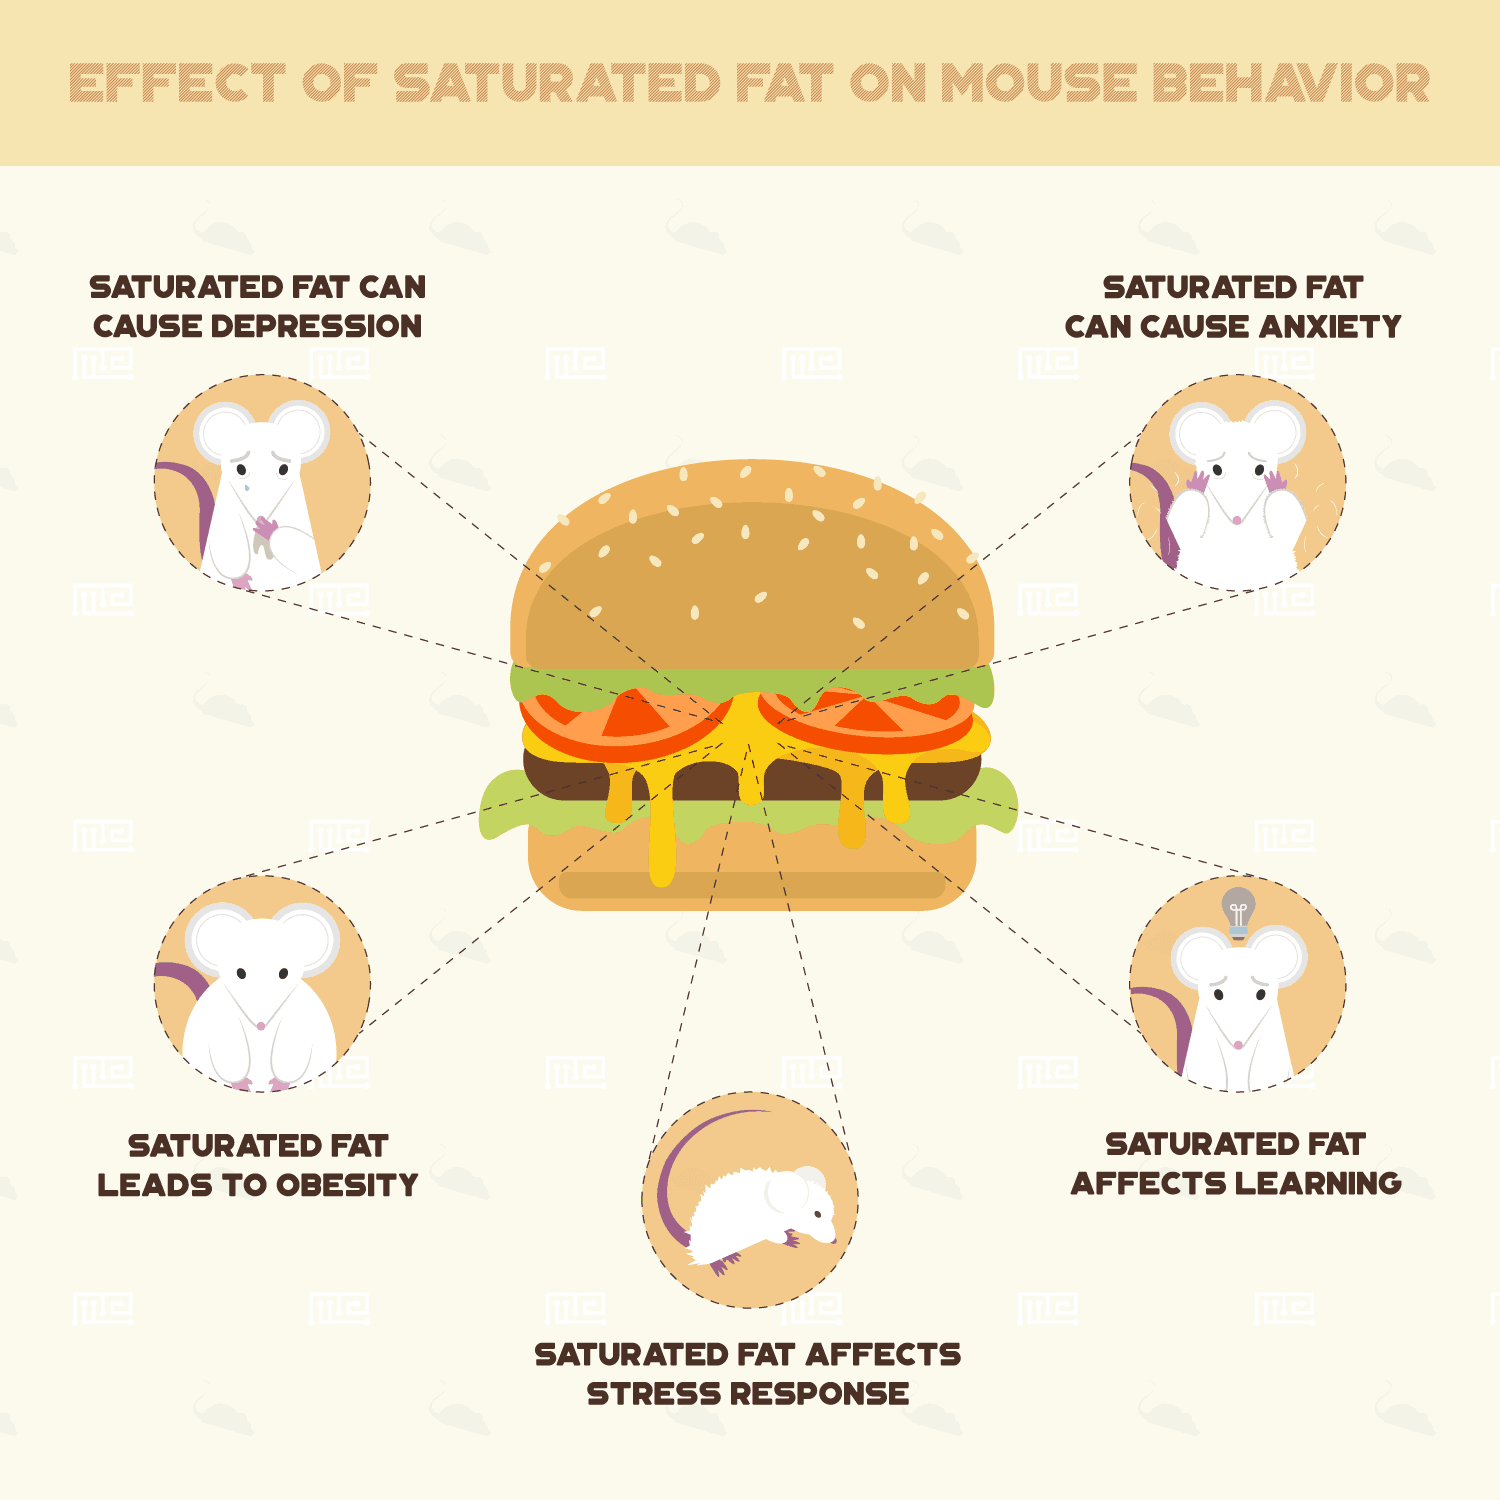 Effects of Saturated fat on Mouse Behavior